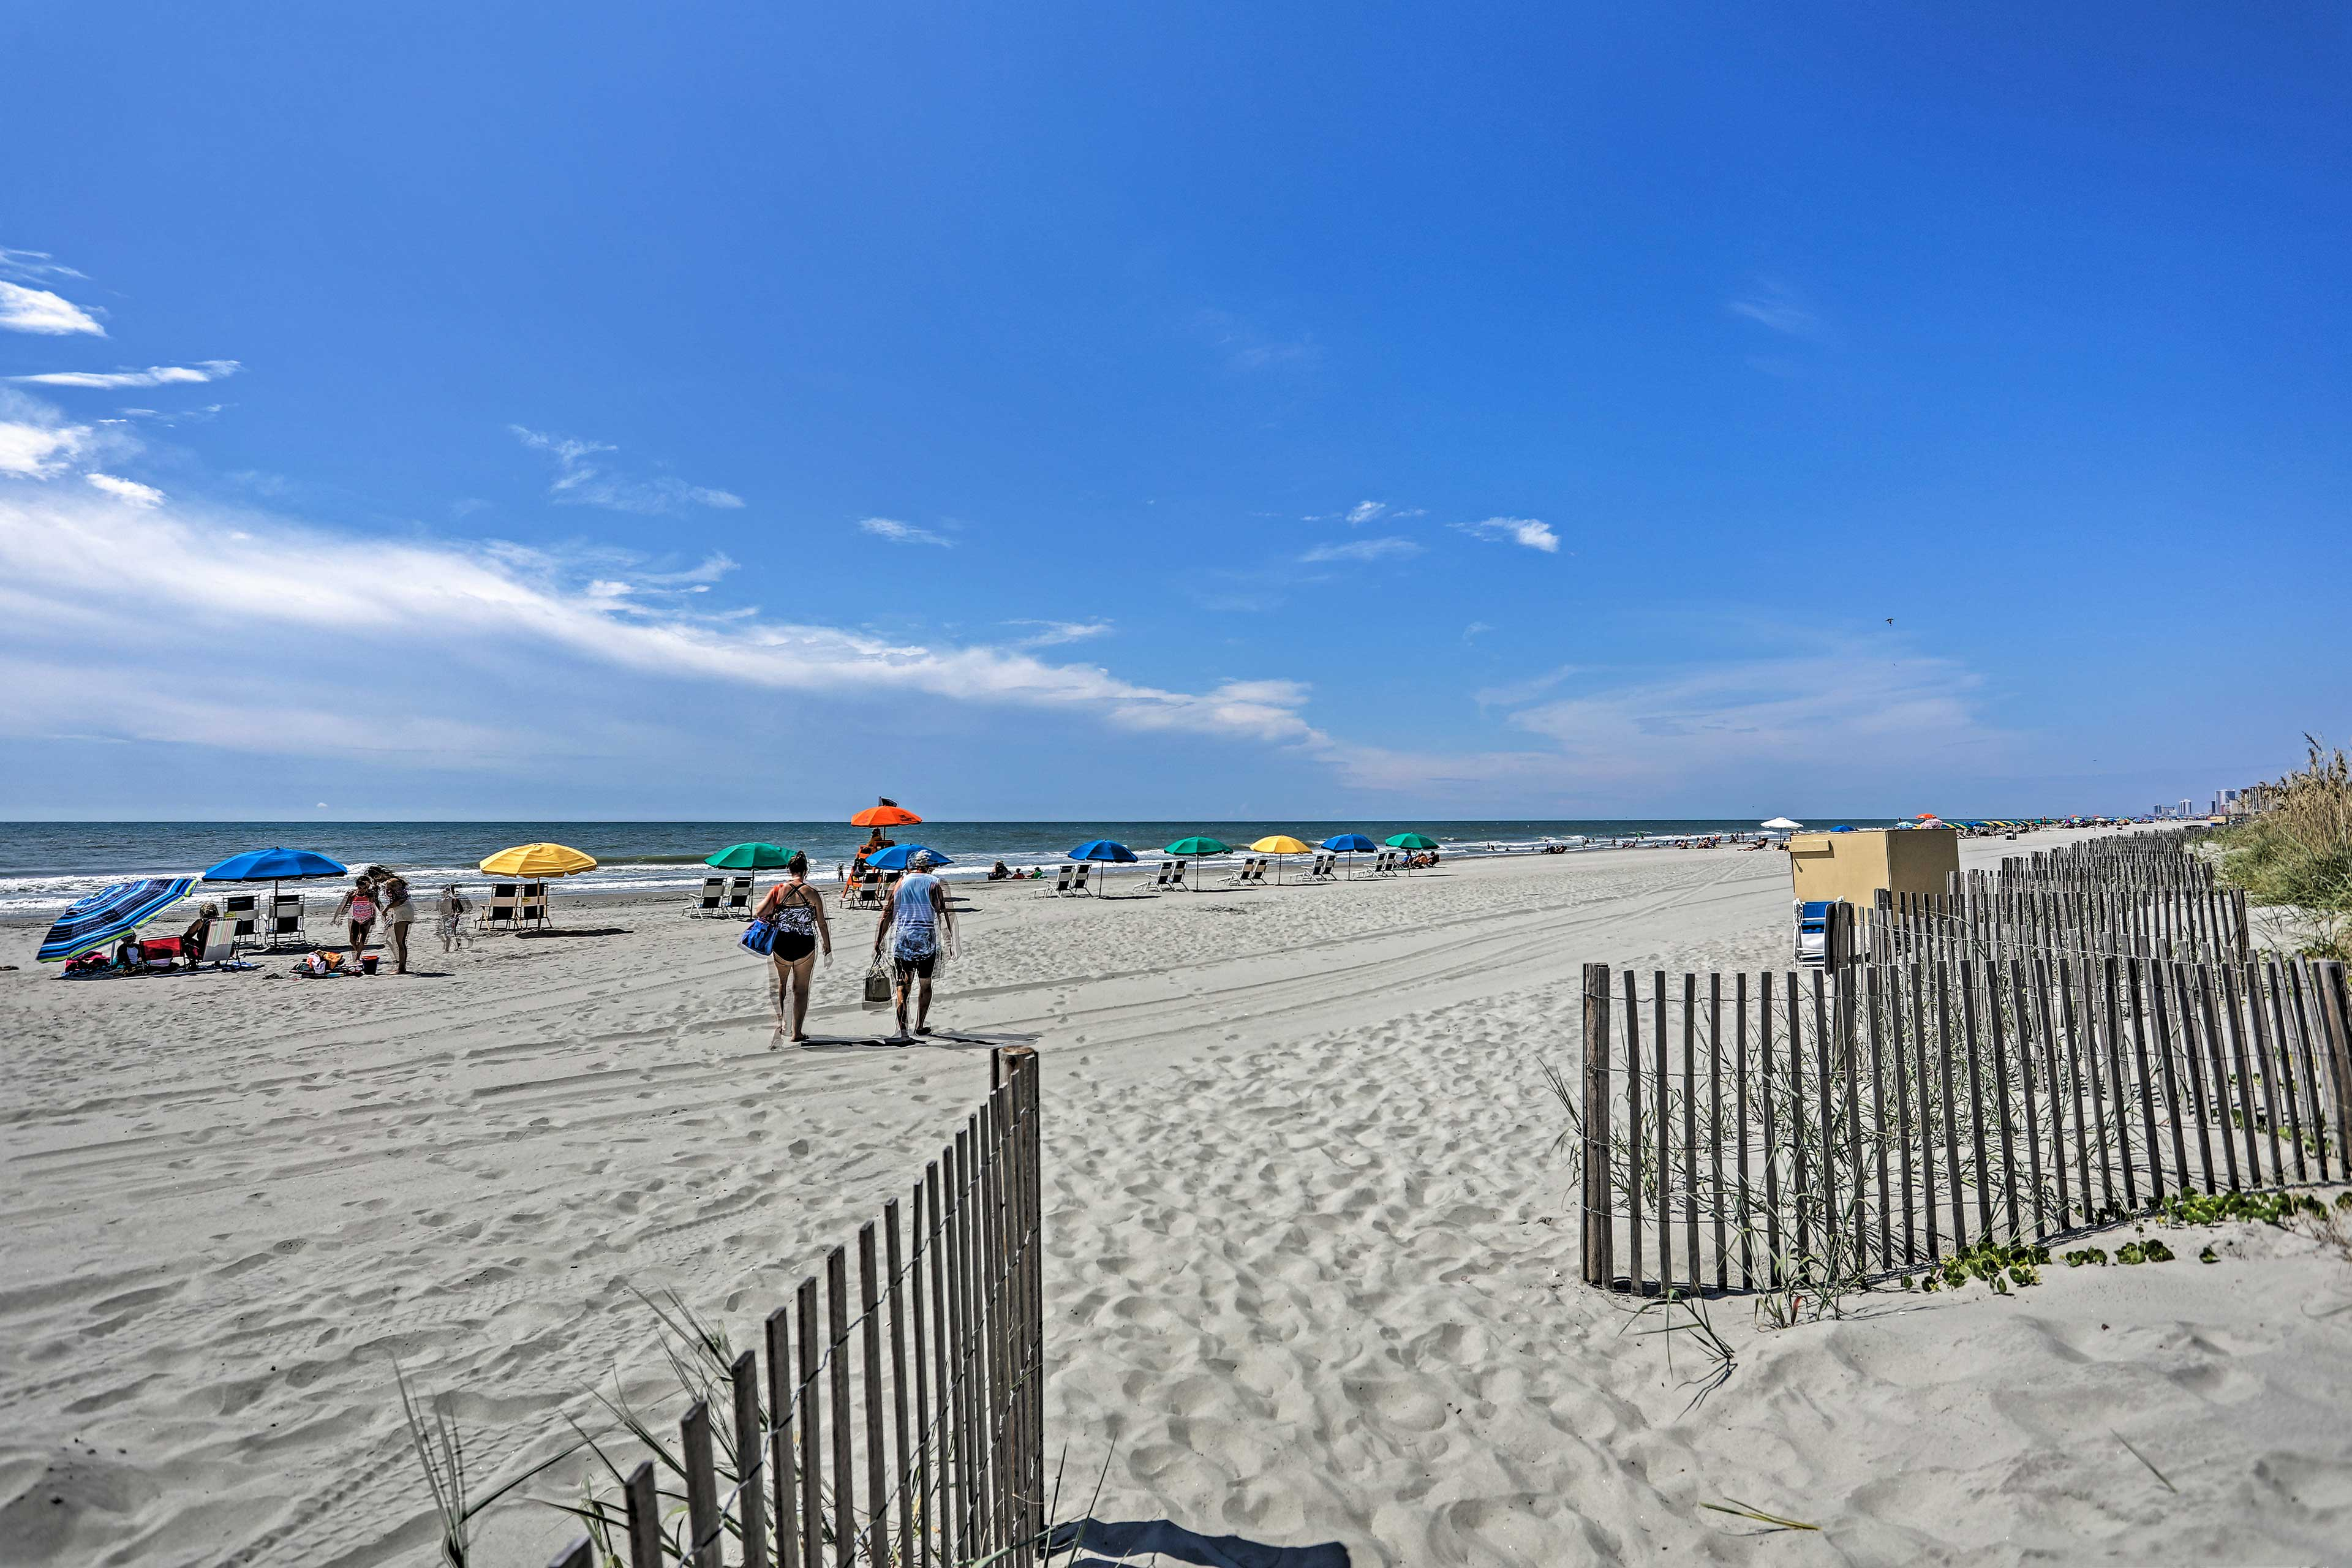 Walk to the beach with your towel and umbrella in hand!